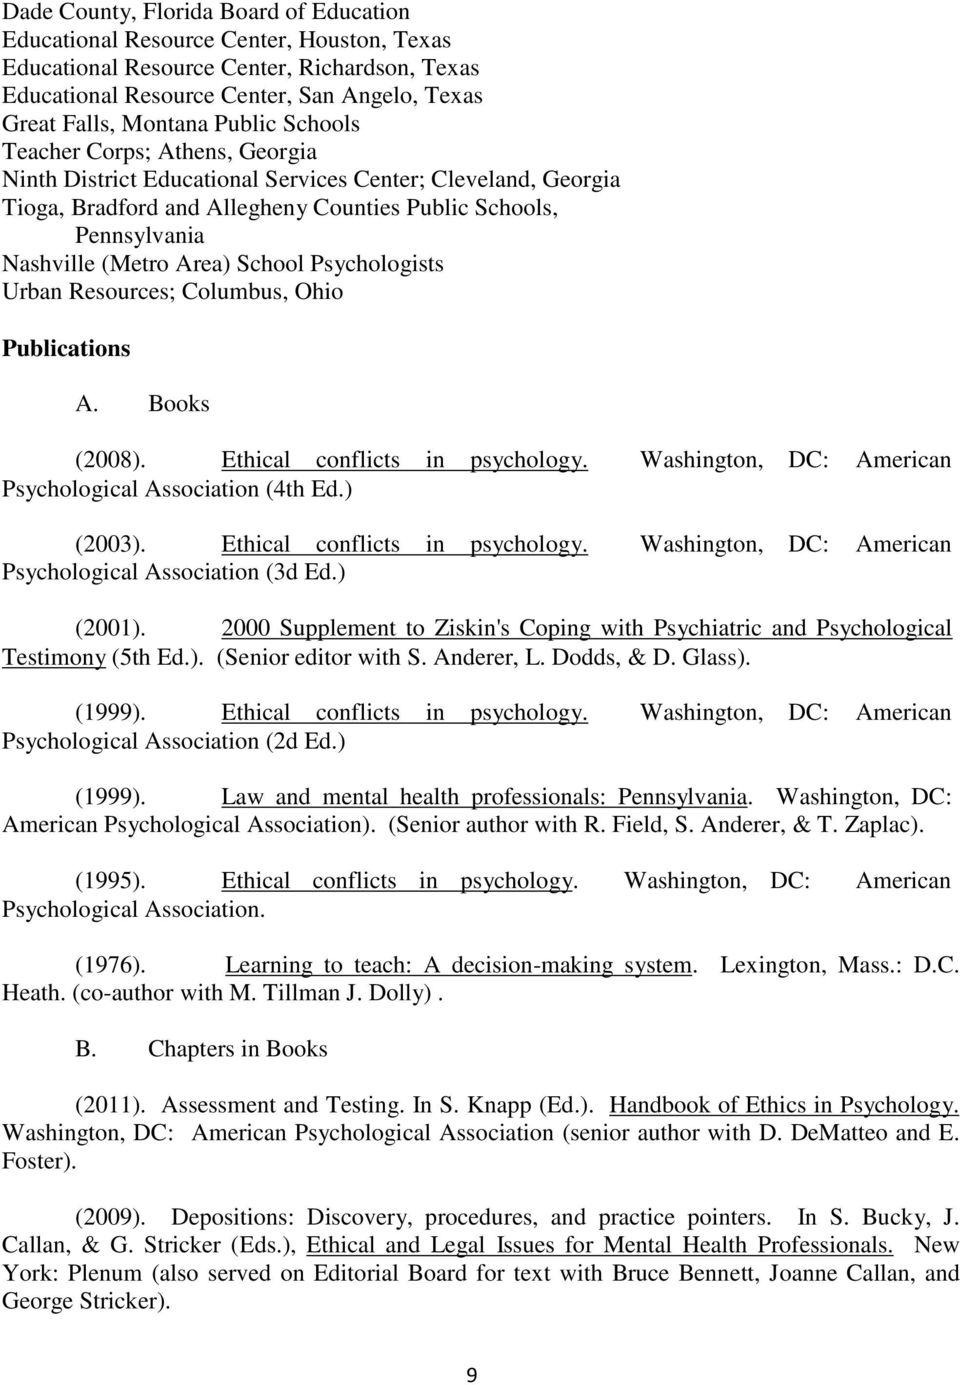 School Psychologists Urban Resources; Columbus, Ohio Publications A. Books (2008). Ethical conflicts in psychology. Washington, DC: American Psychological Association (4th Ed.) (2003).